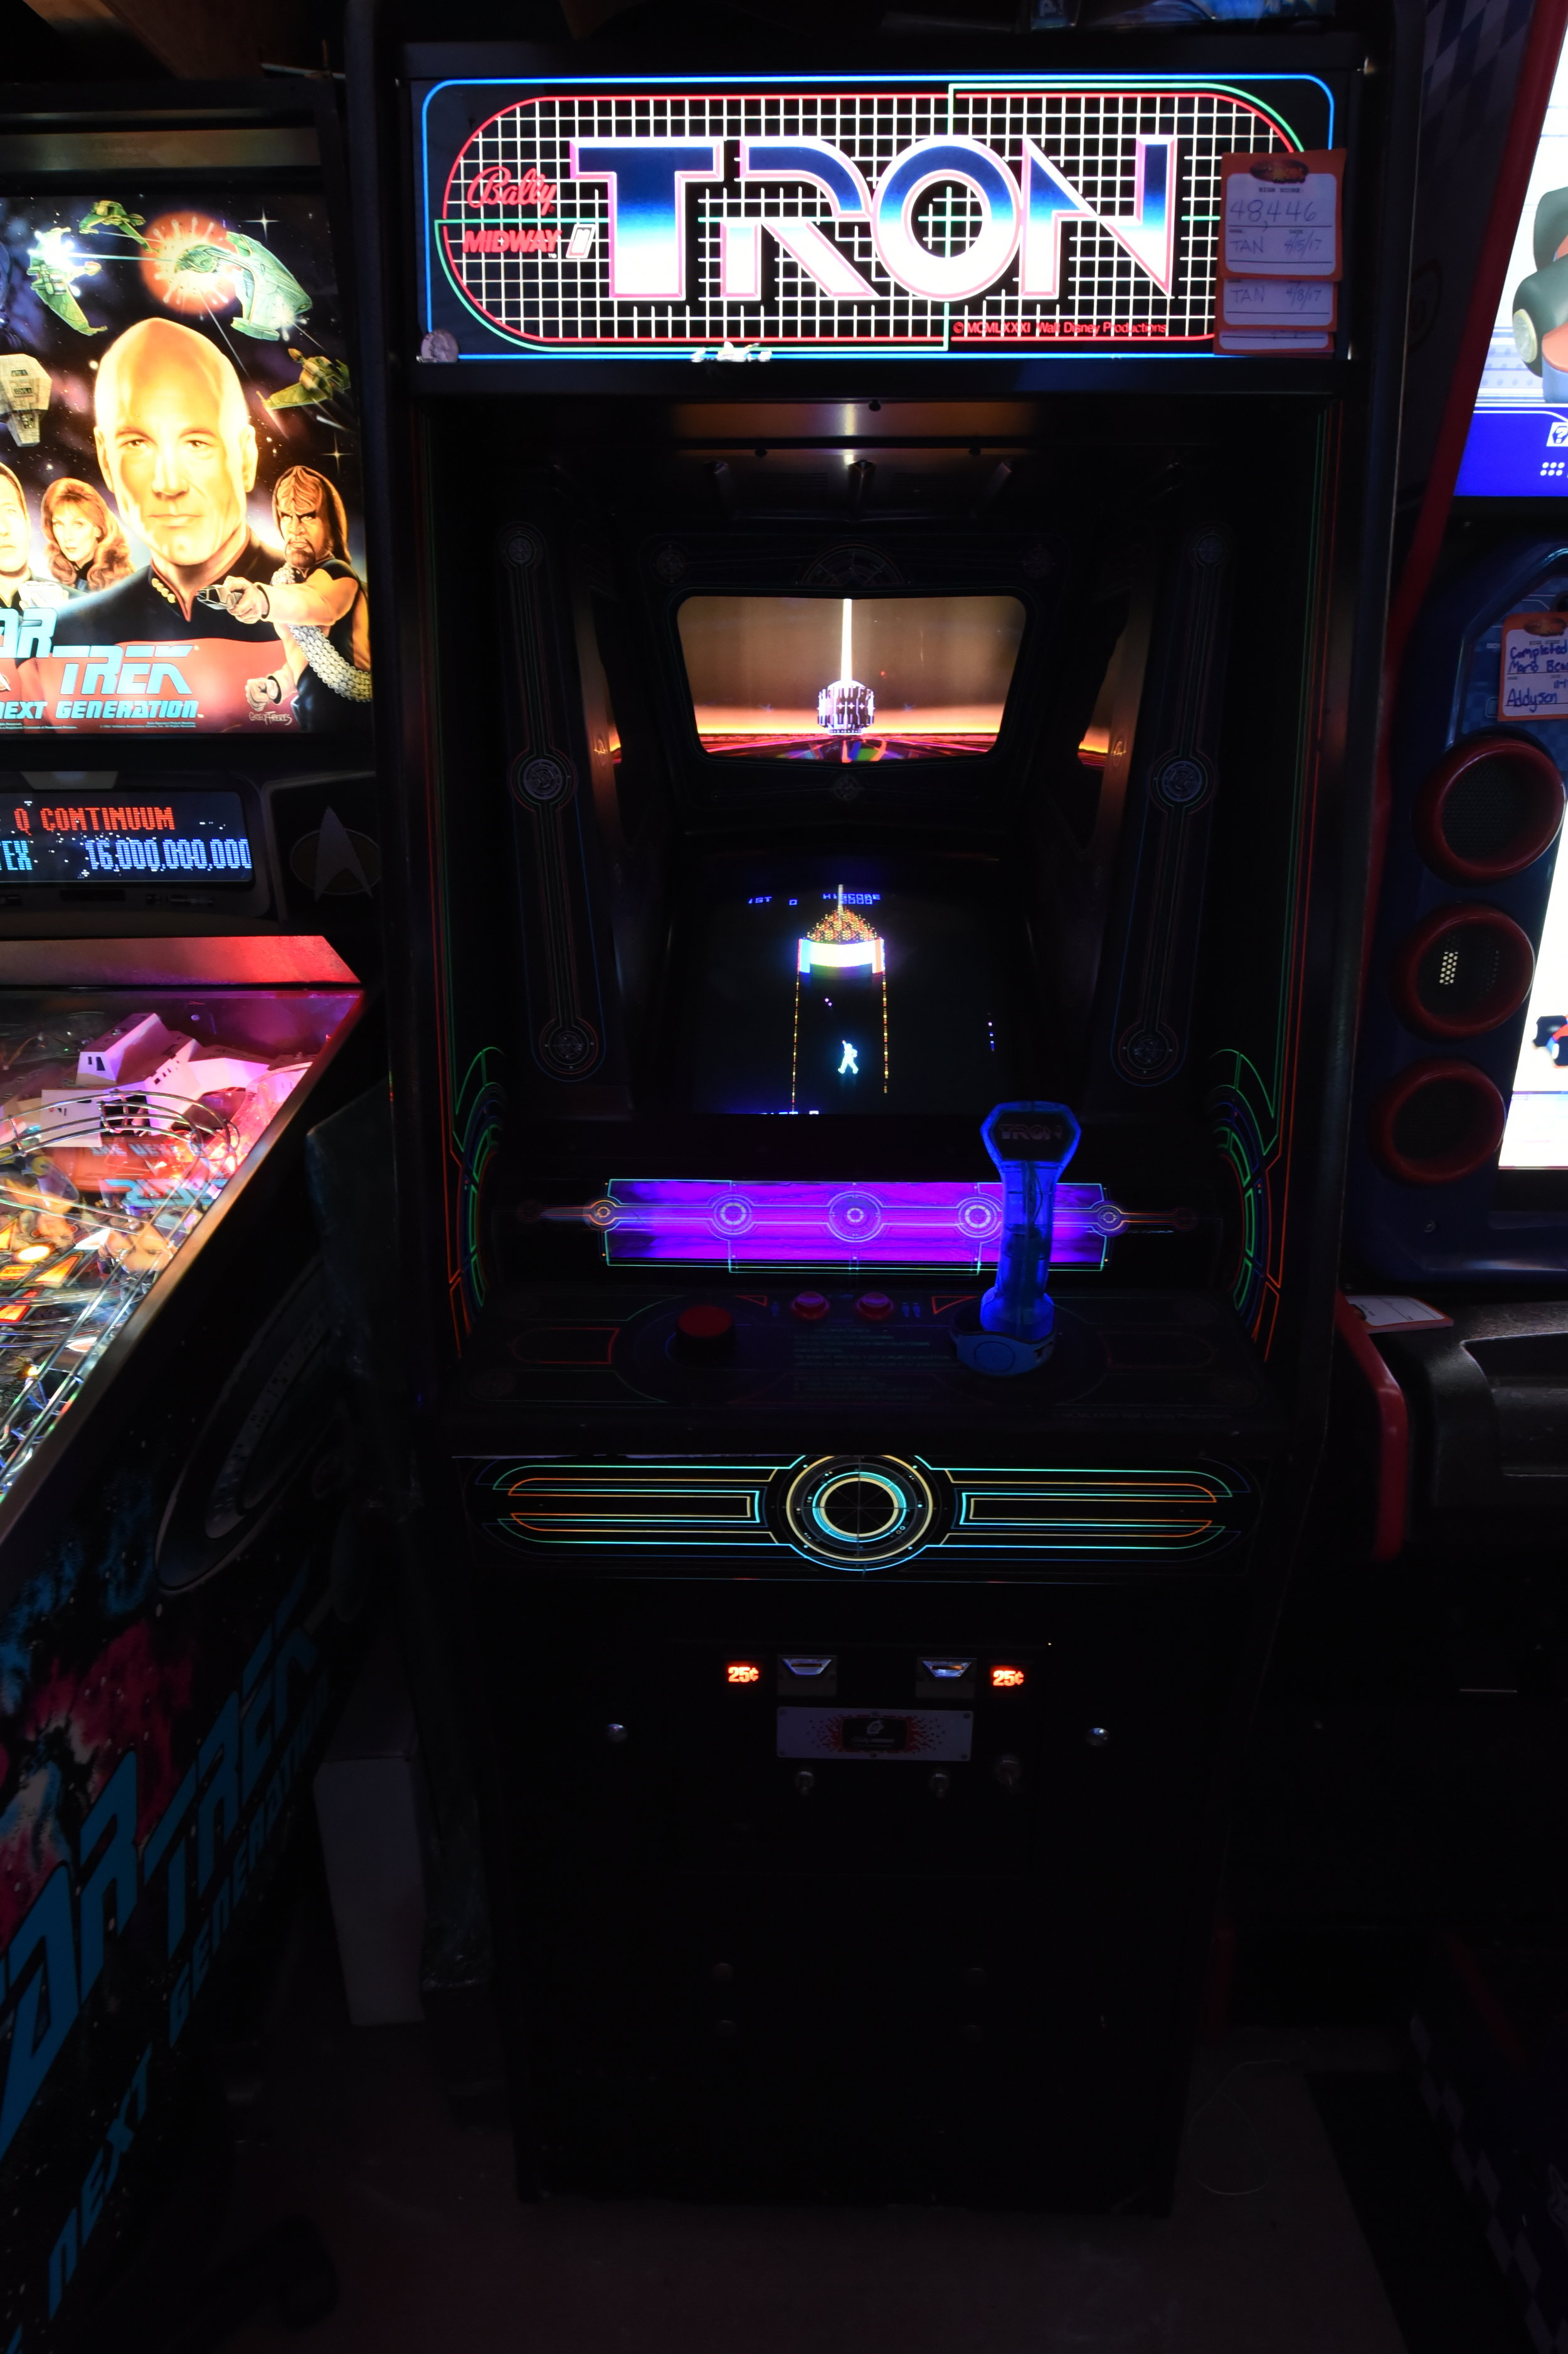 My Tron has some of the usual lower particle board damage but isn't bad. The Artwork and Marquee are pretty good but not perfect. Let's call it authentic battle-damage. :) Picked it up from a Pawn shop in Saraland thinks to a heads up from fellow collector-friend, Mike.